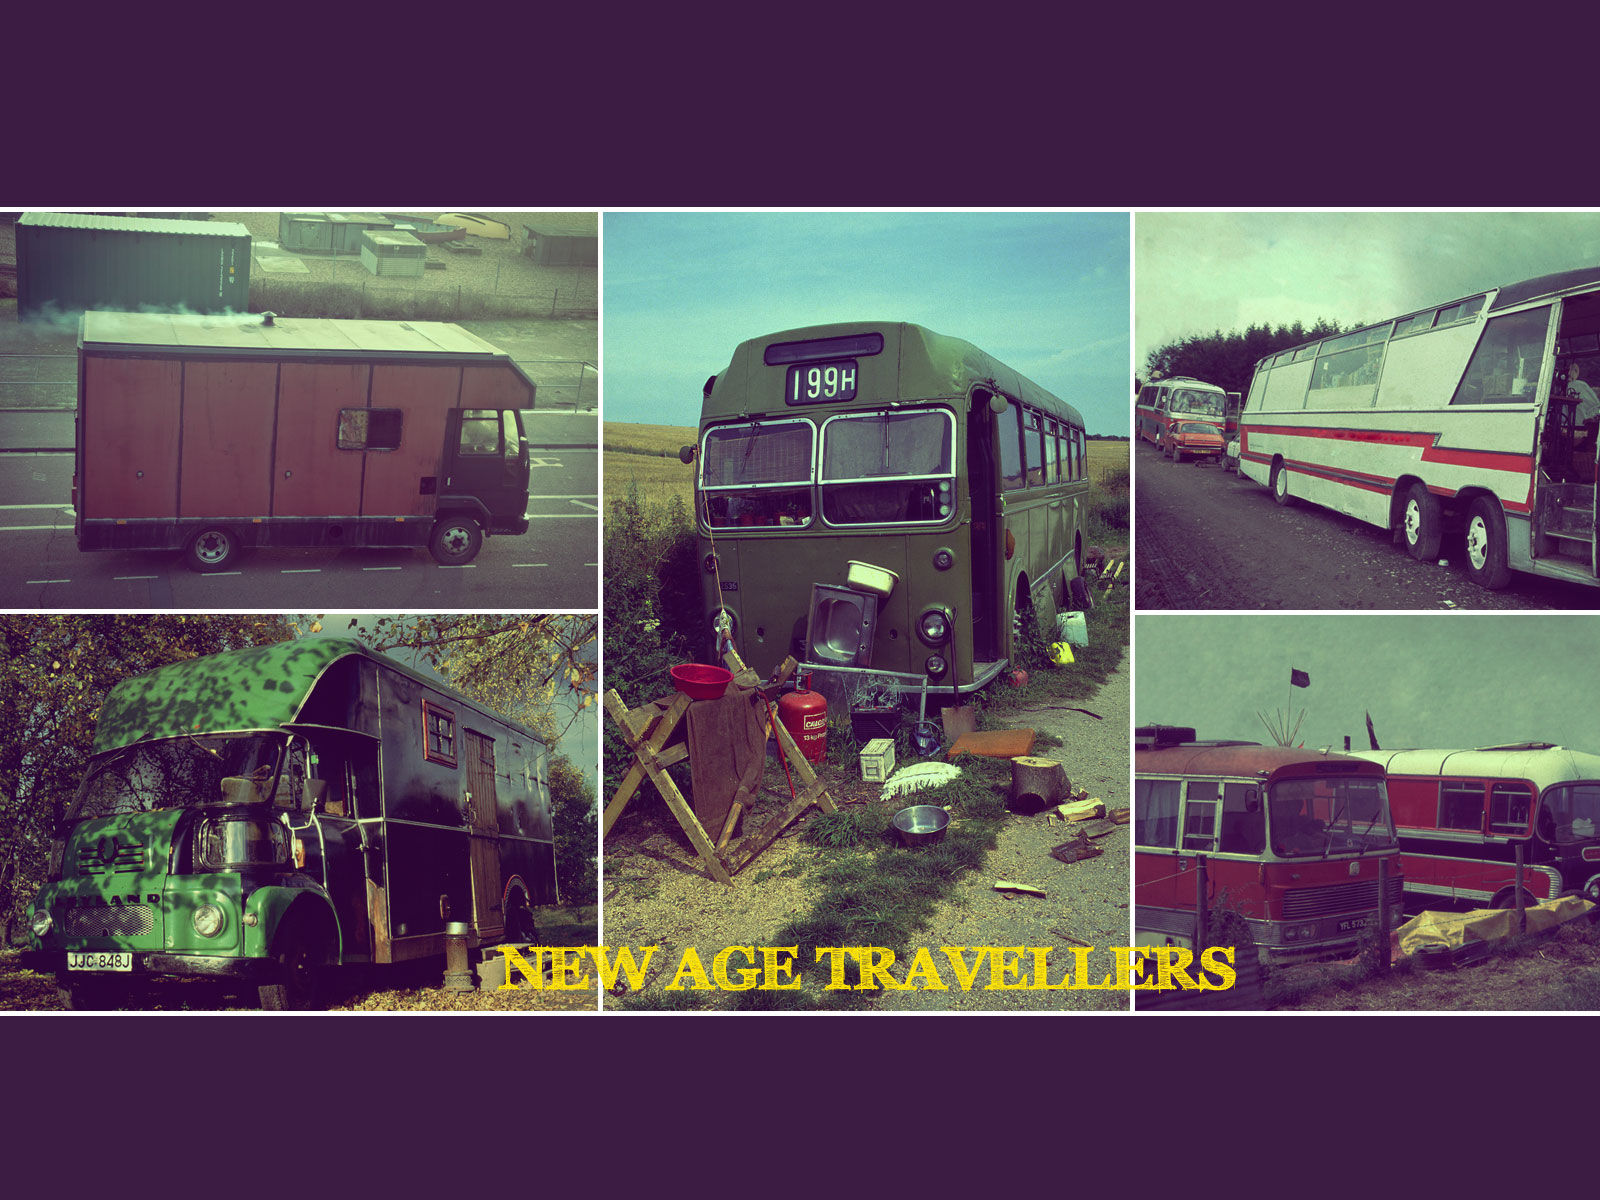 New age travellers